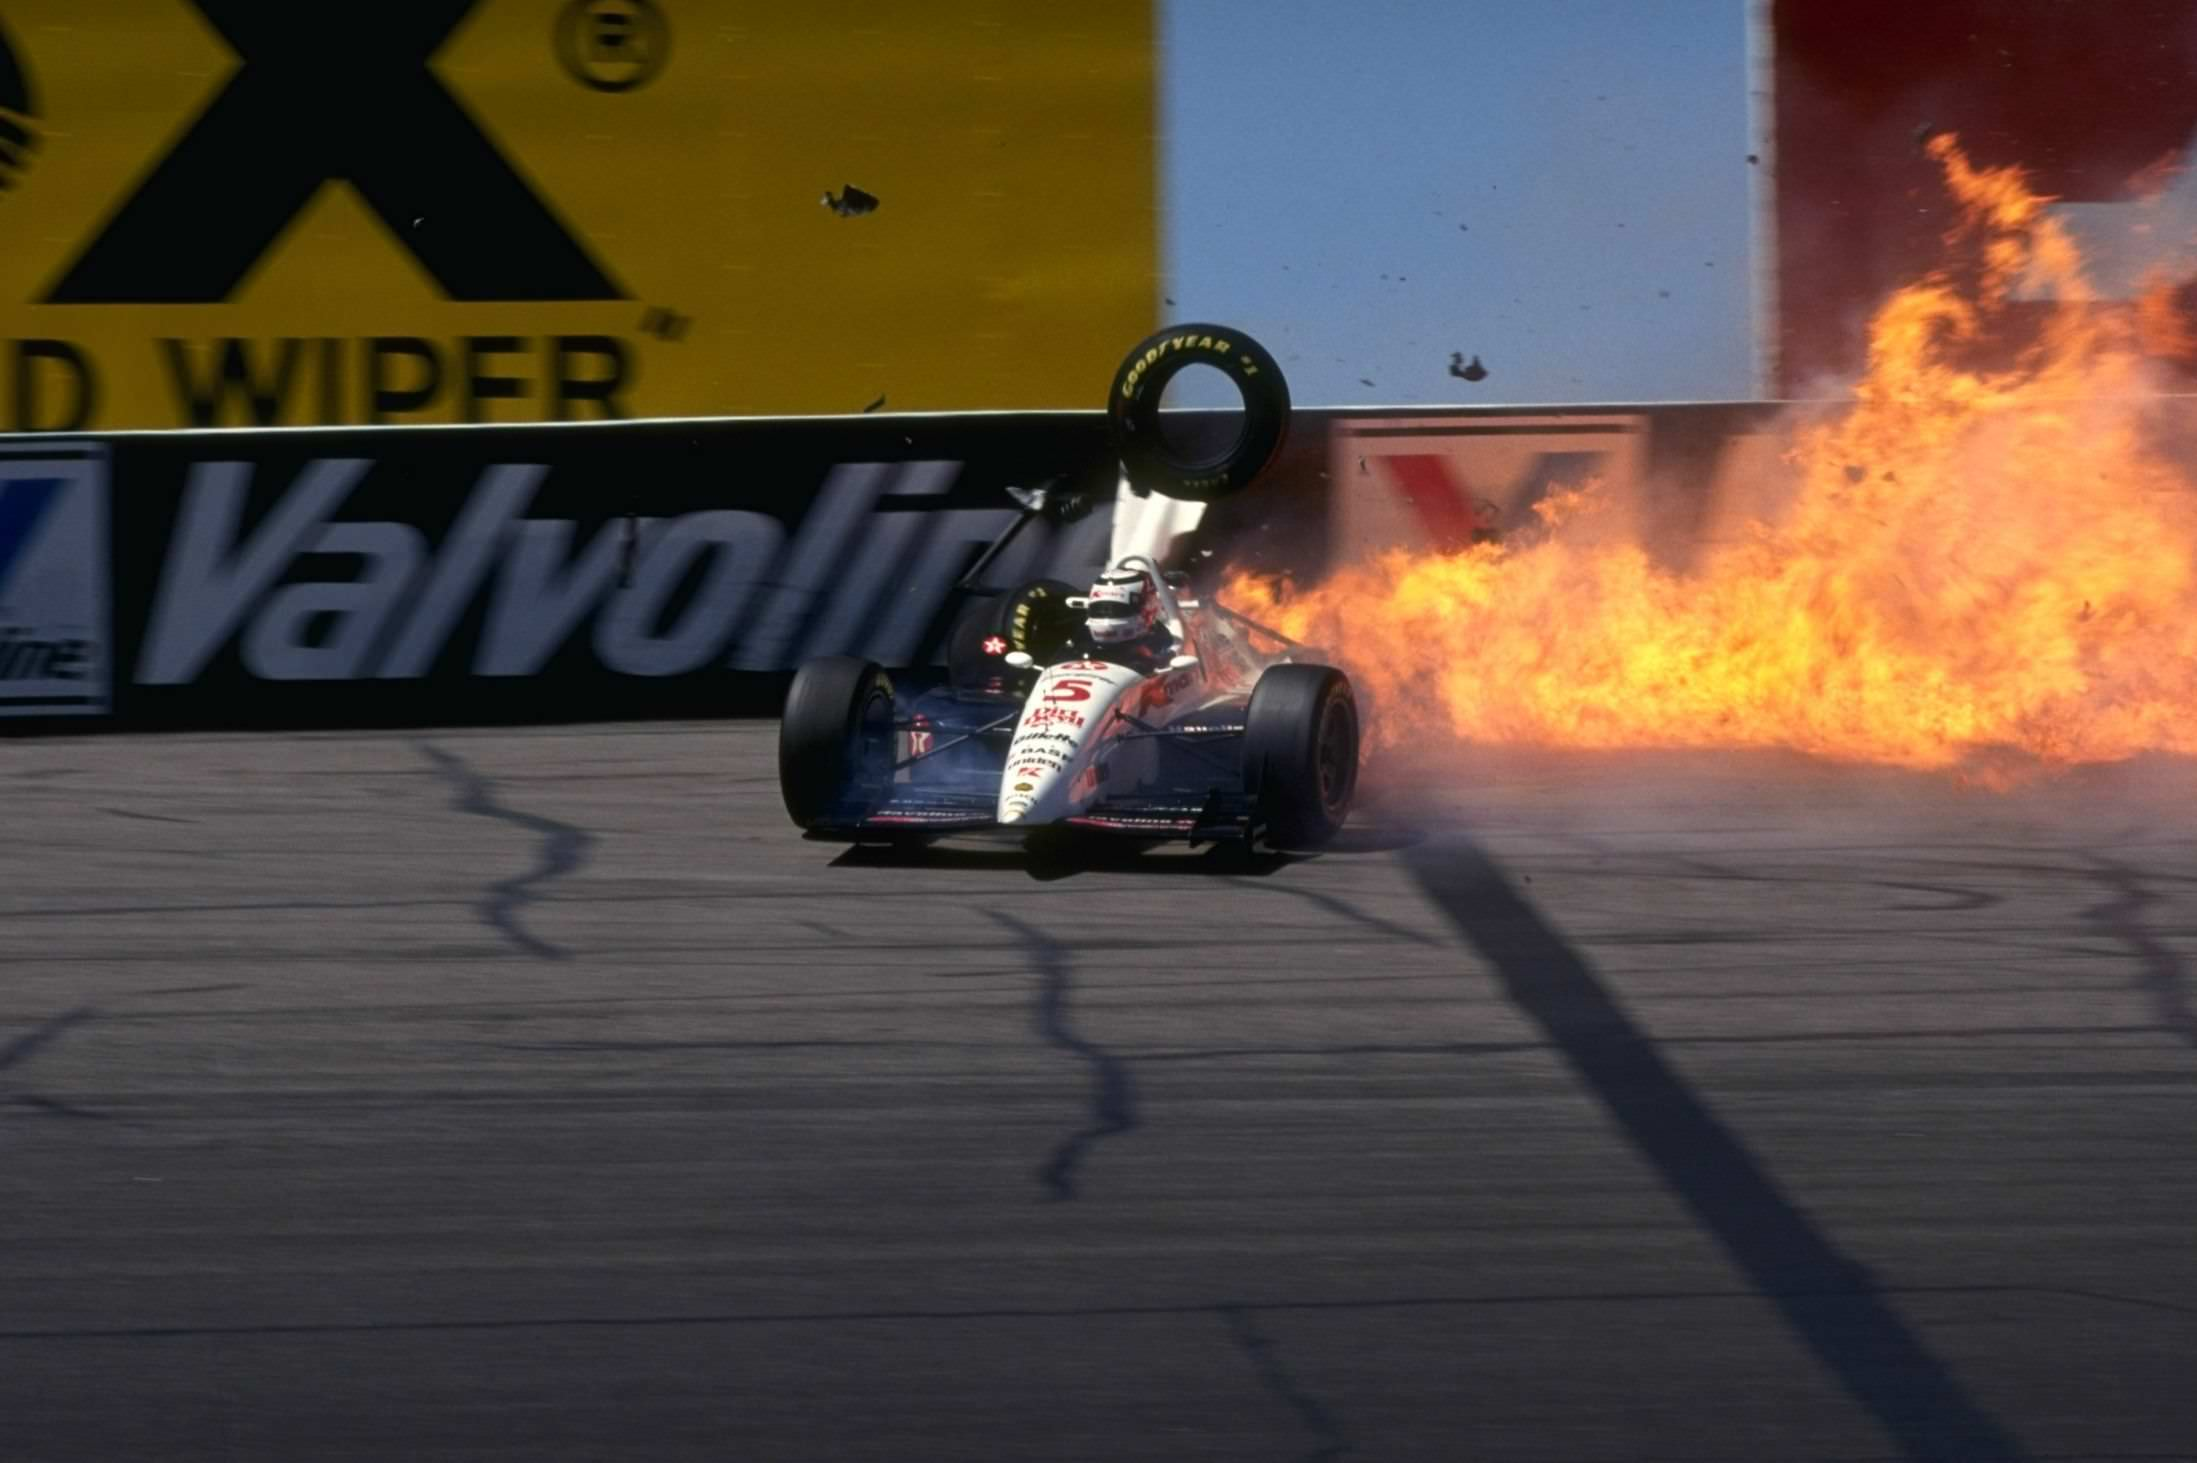 Nigel-Mansell-Crash-1993-Indycar-Season.